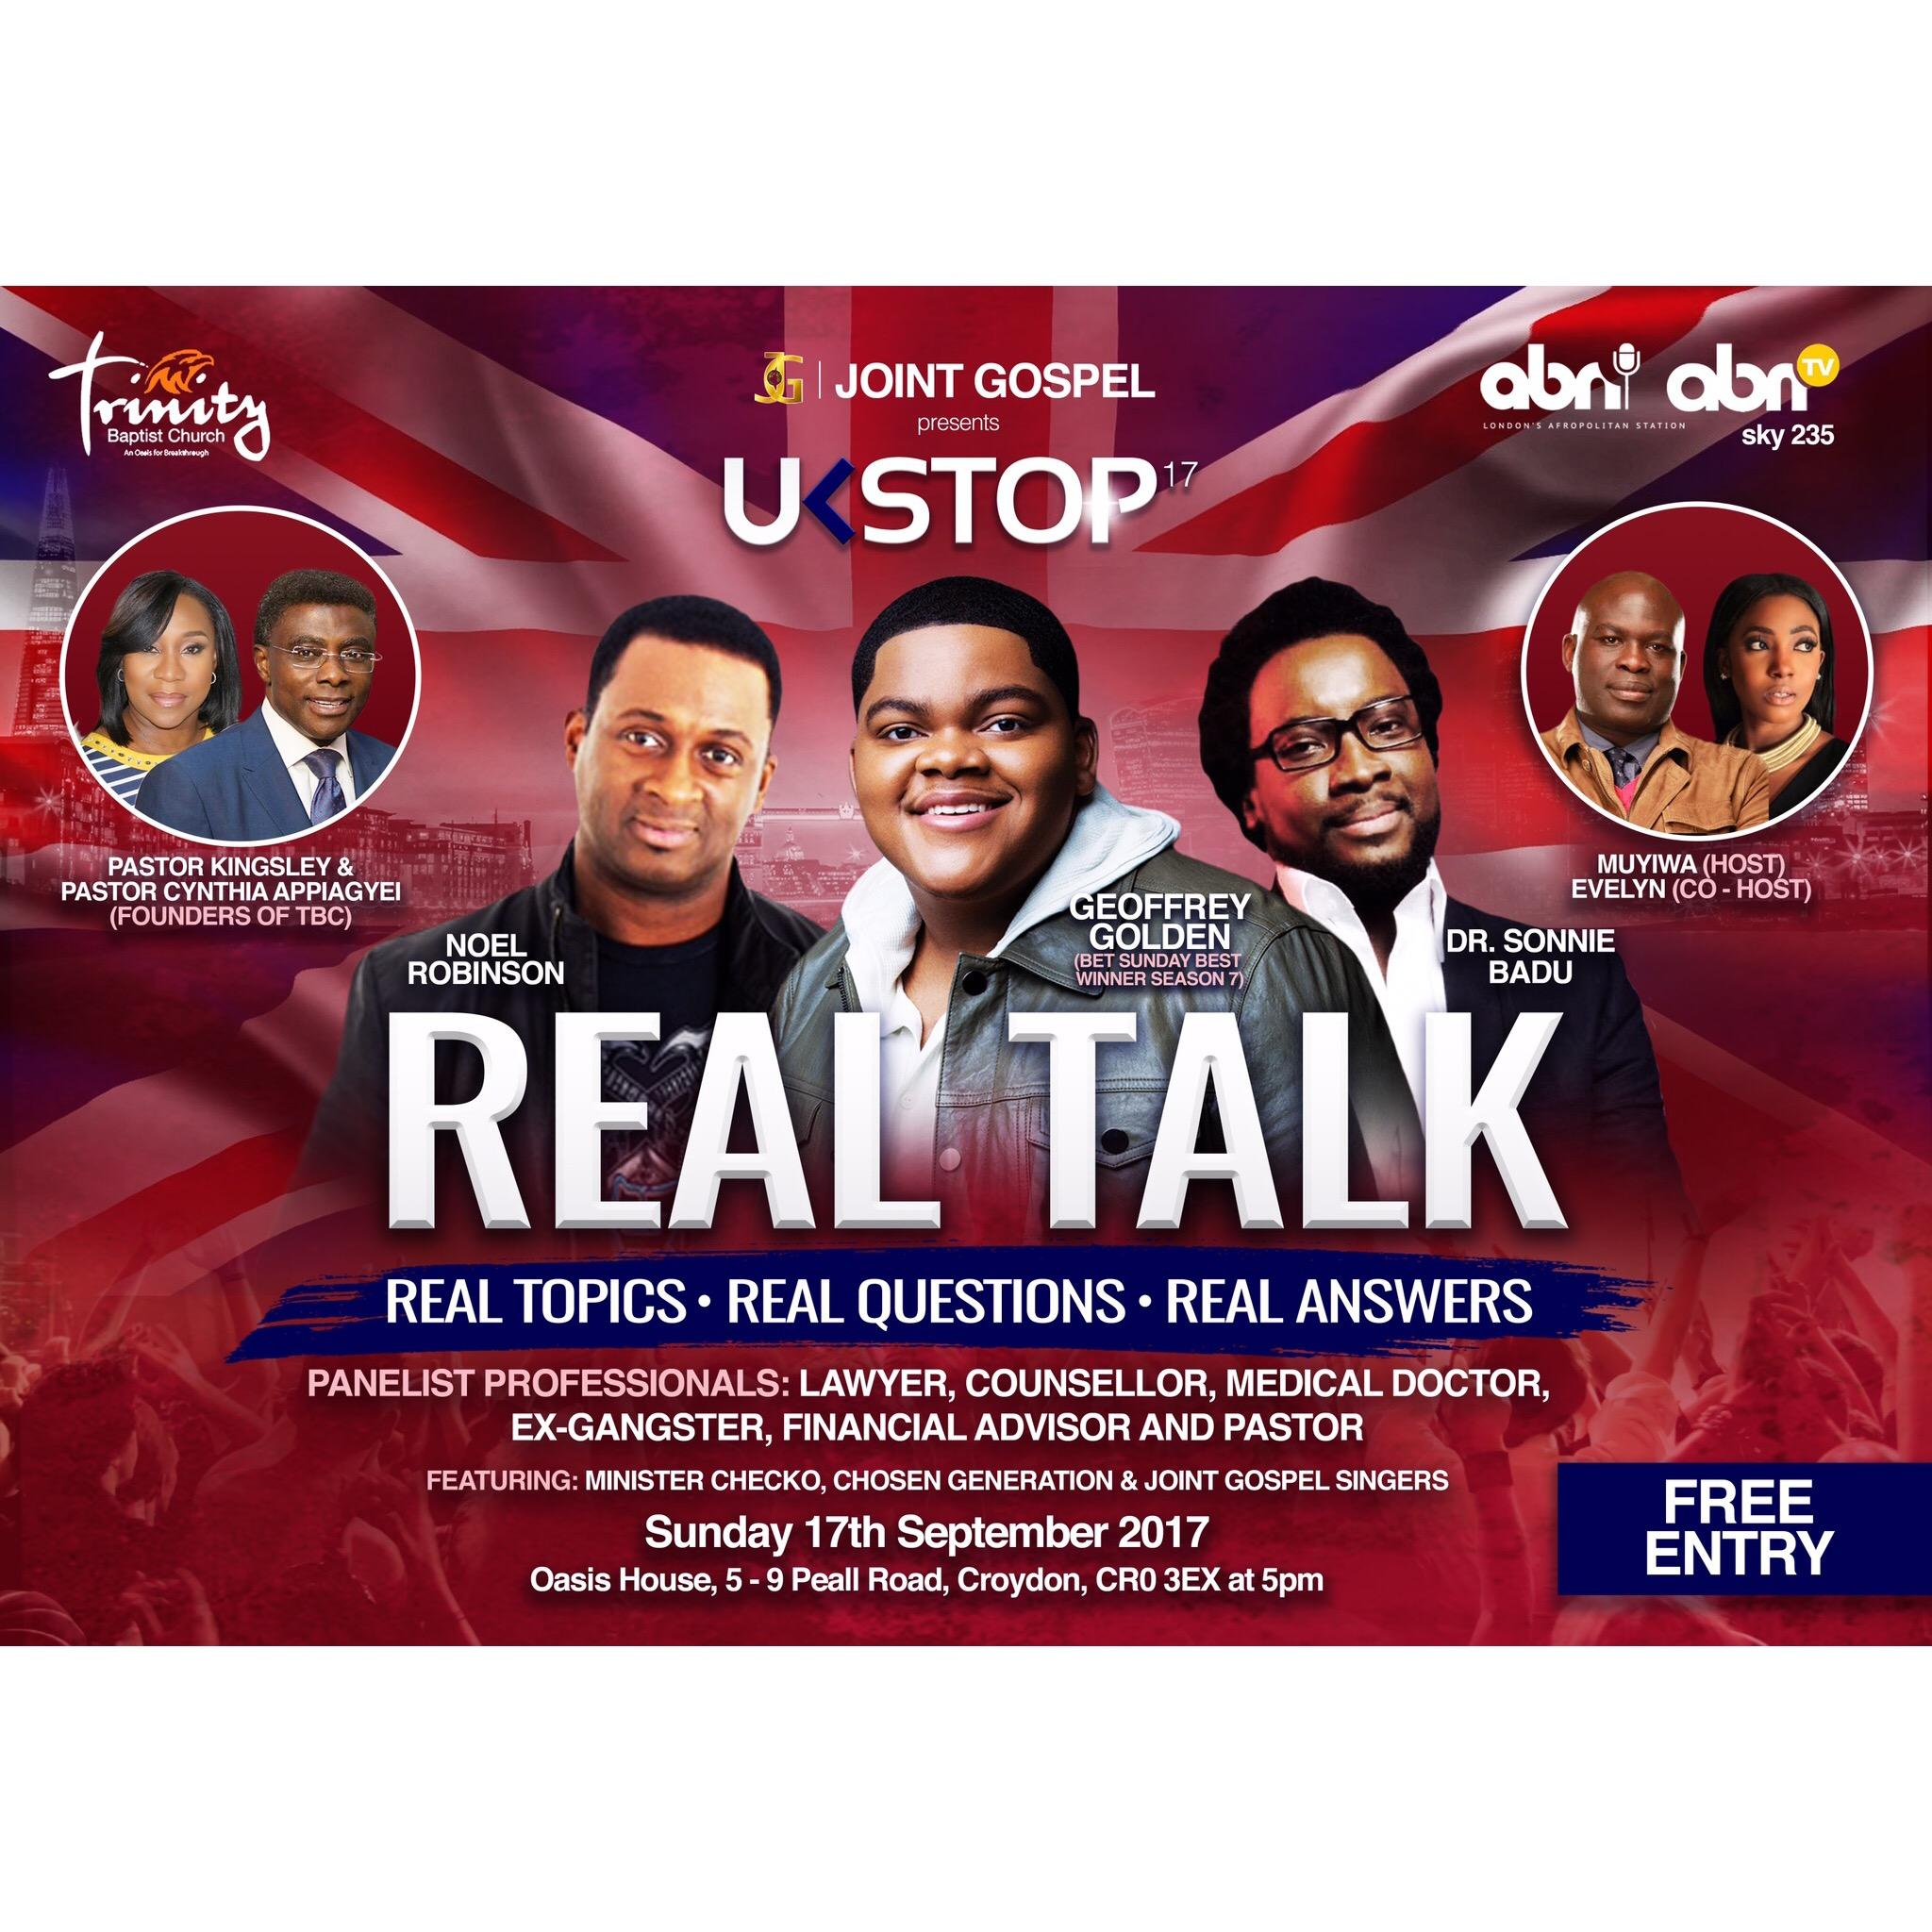 REAL TALK - UKSTOP17 | Blacknet UK